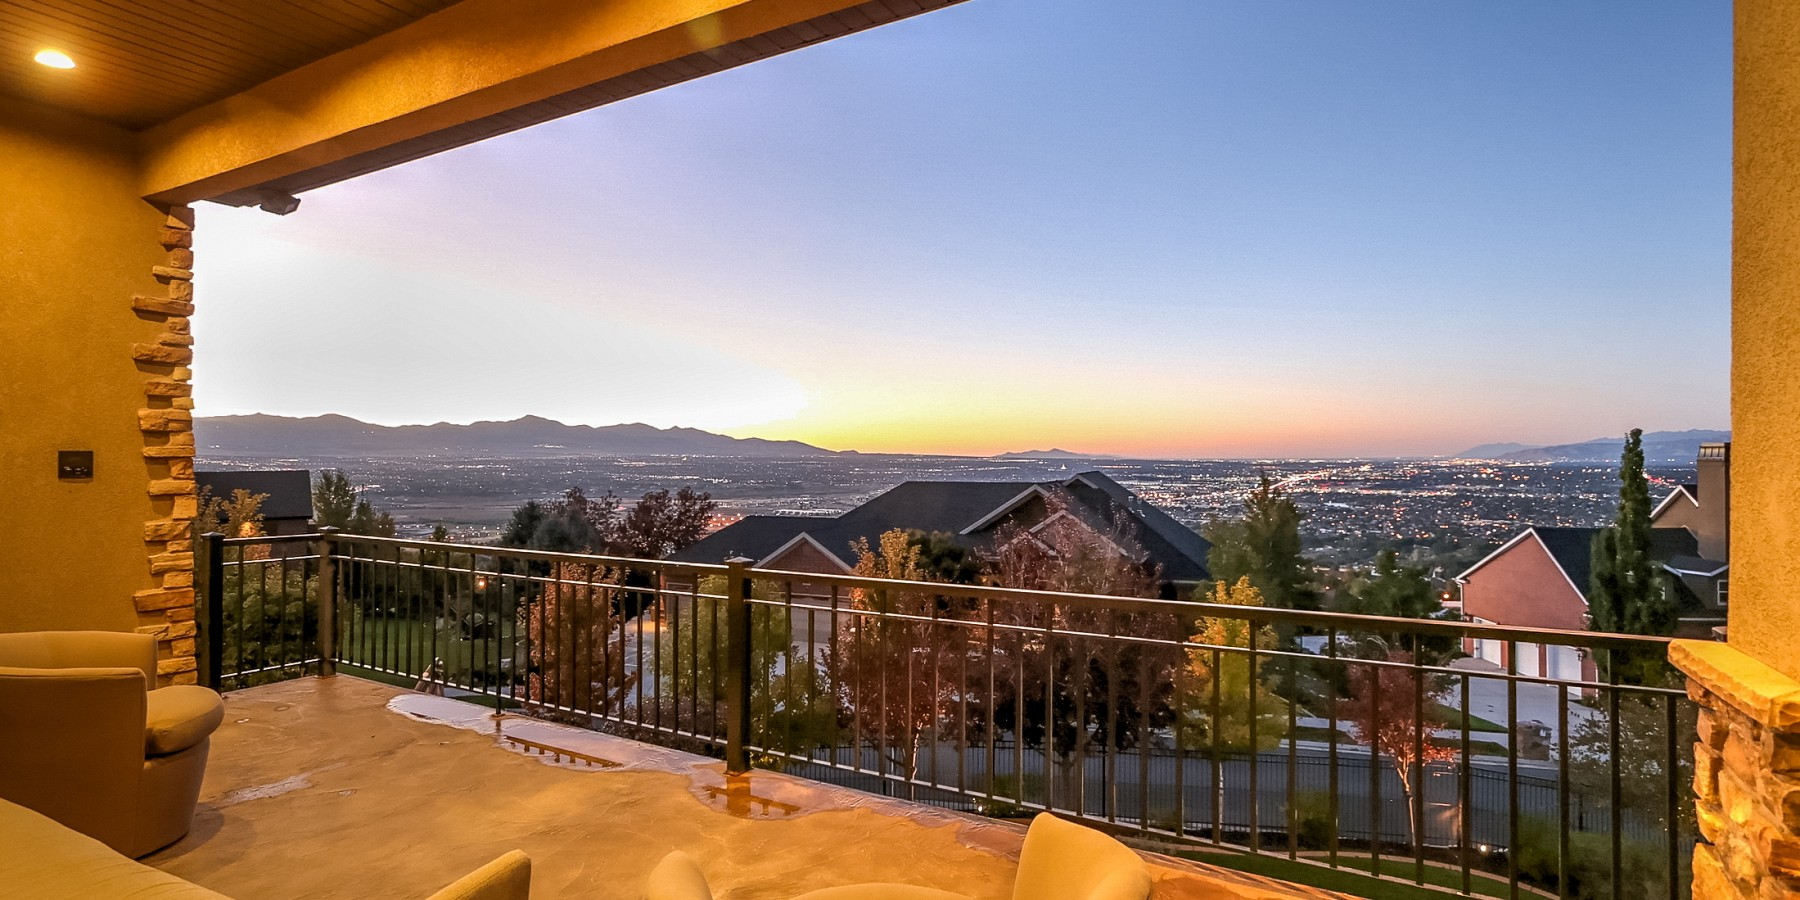 609 E Draper Woods Way, Draper, UT 84020